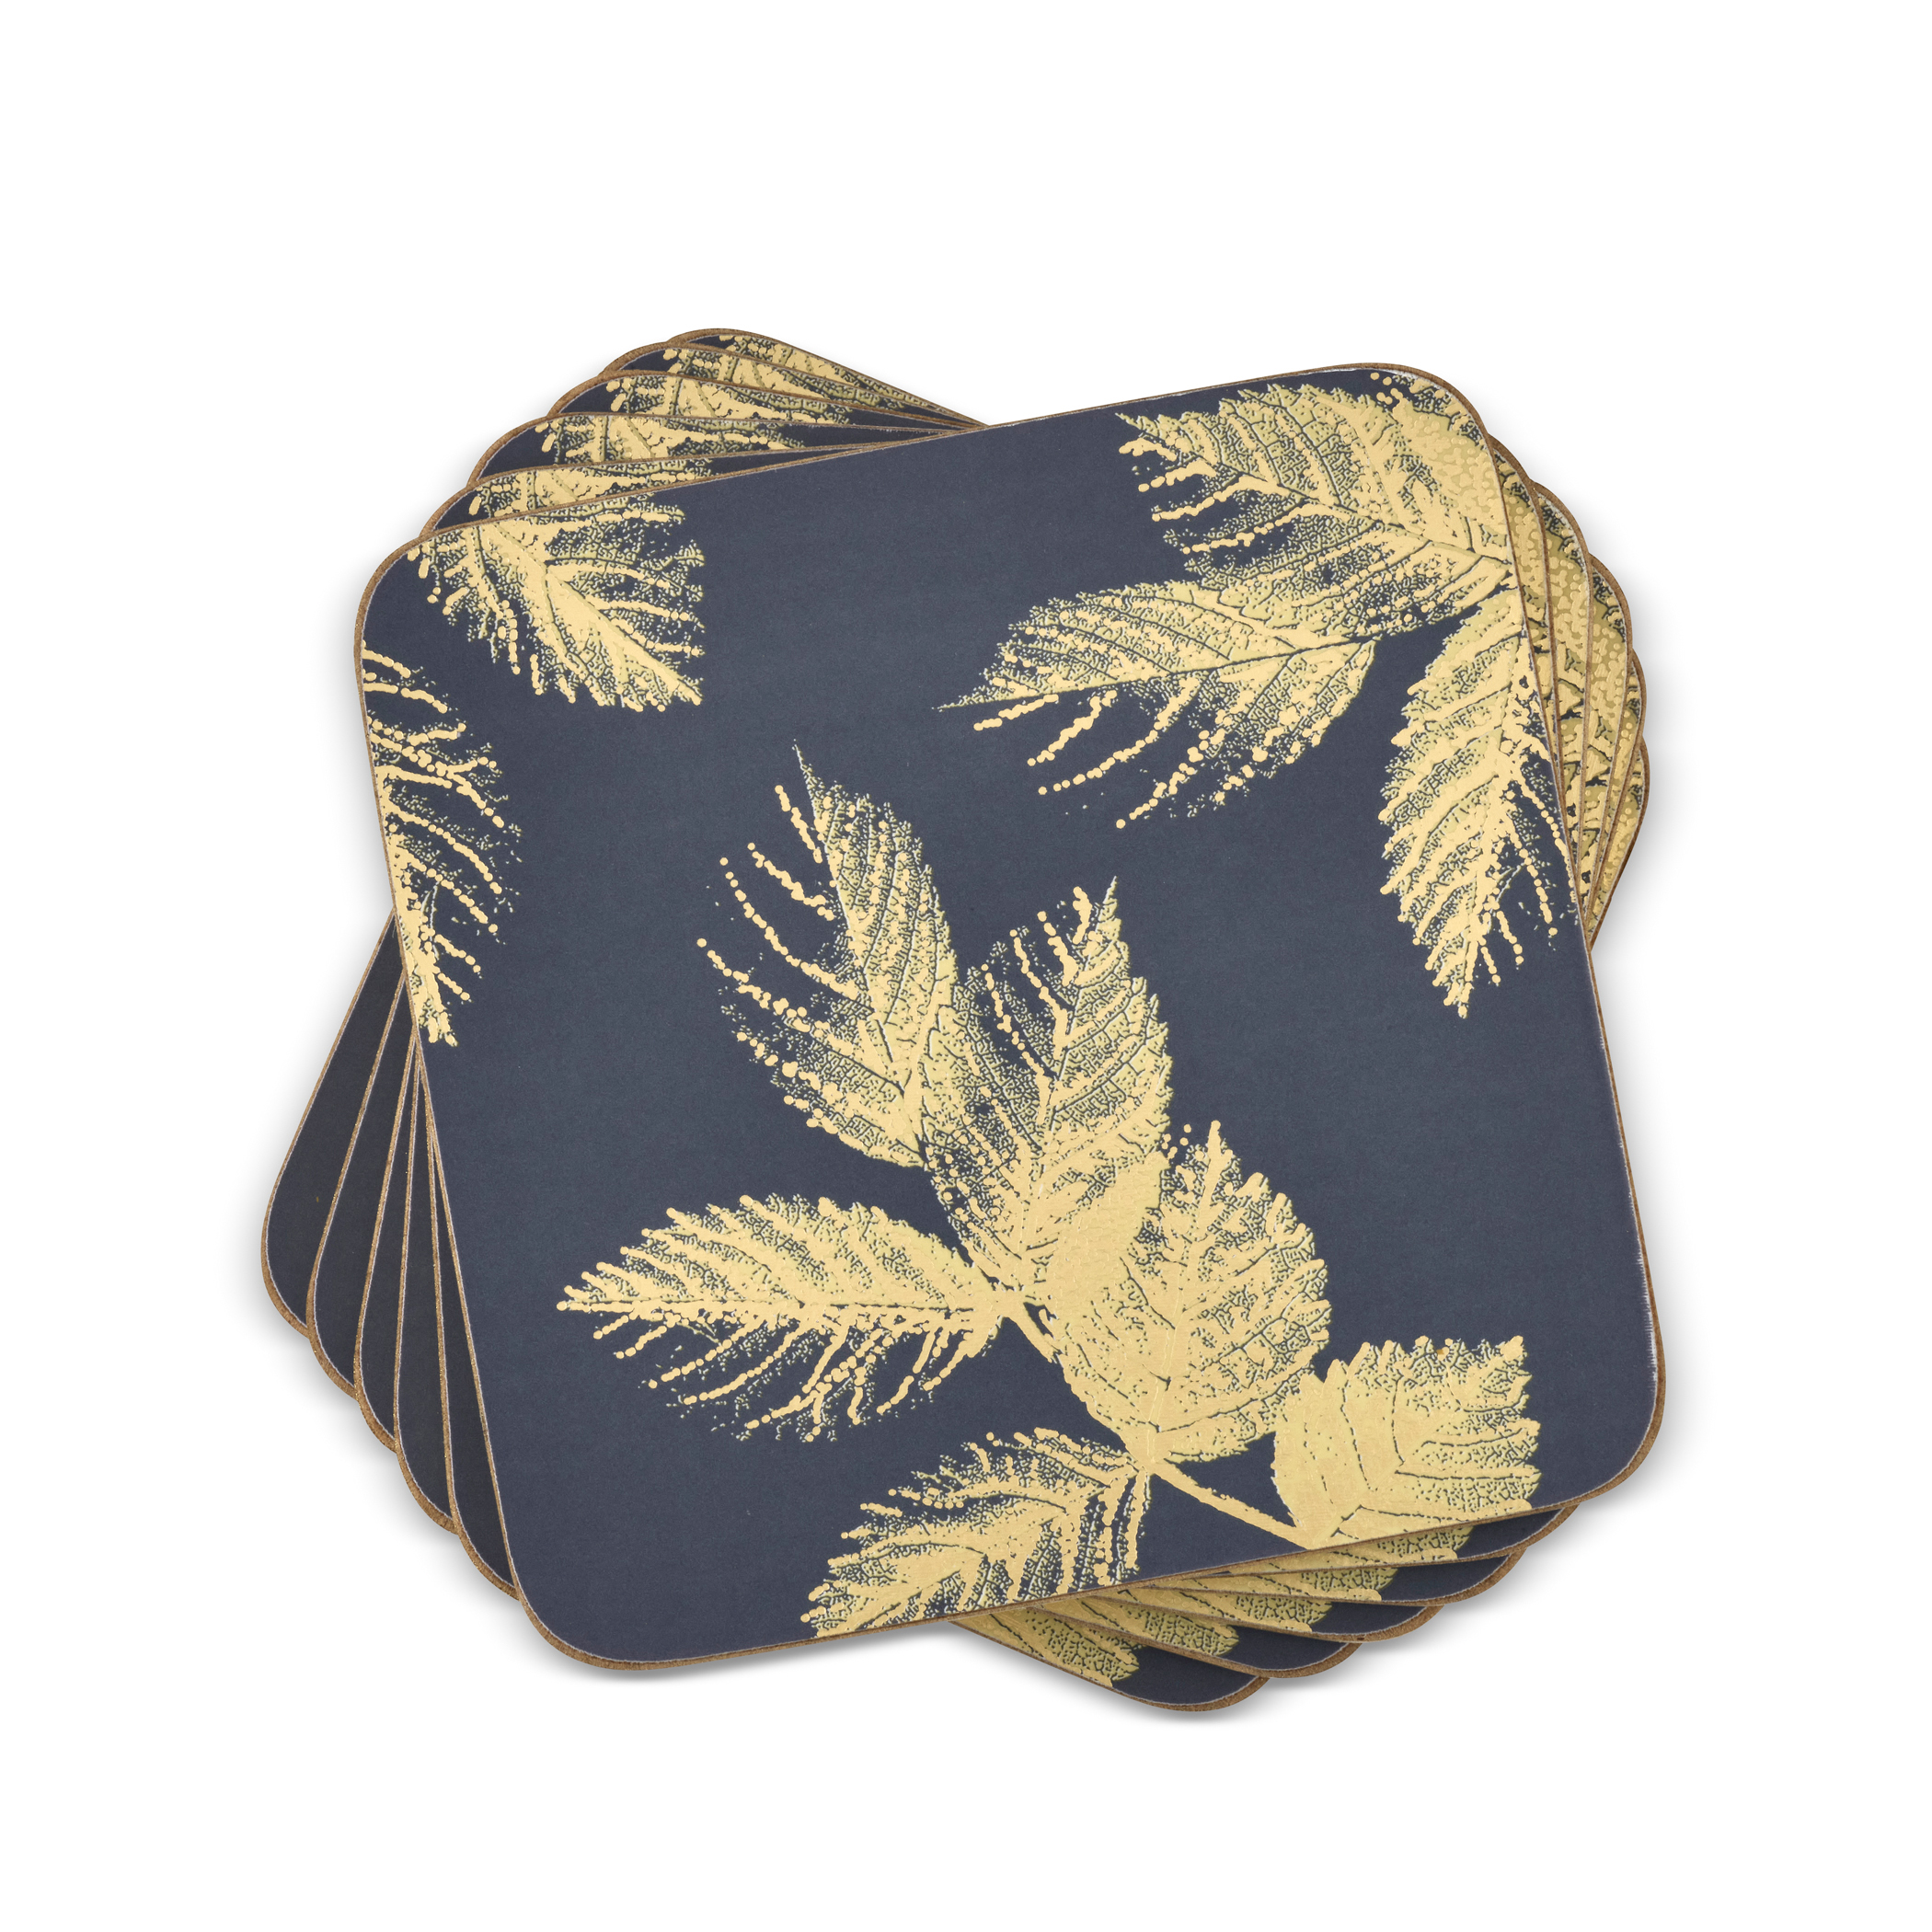 Sara Miller London for Pimpernel Etched Leaves Coasters Set of 6 Navy image number 0